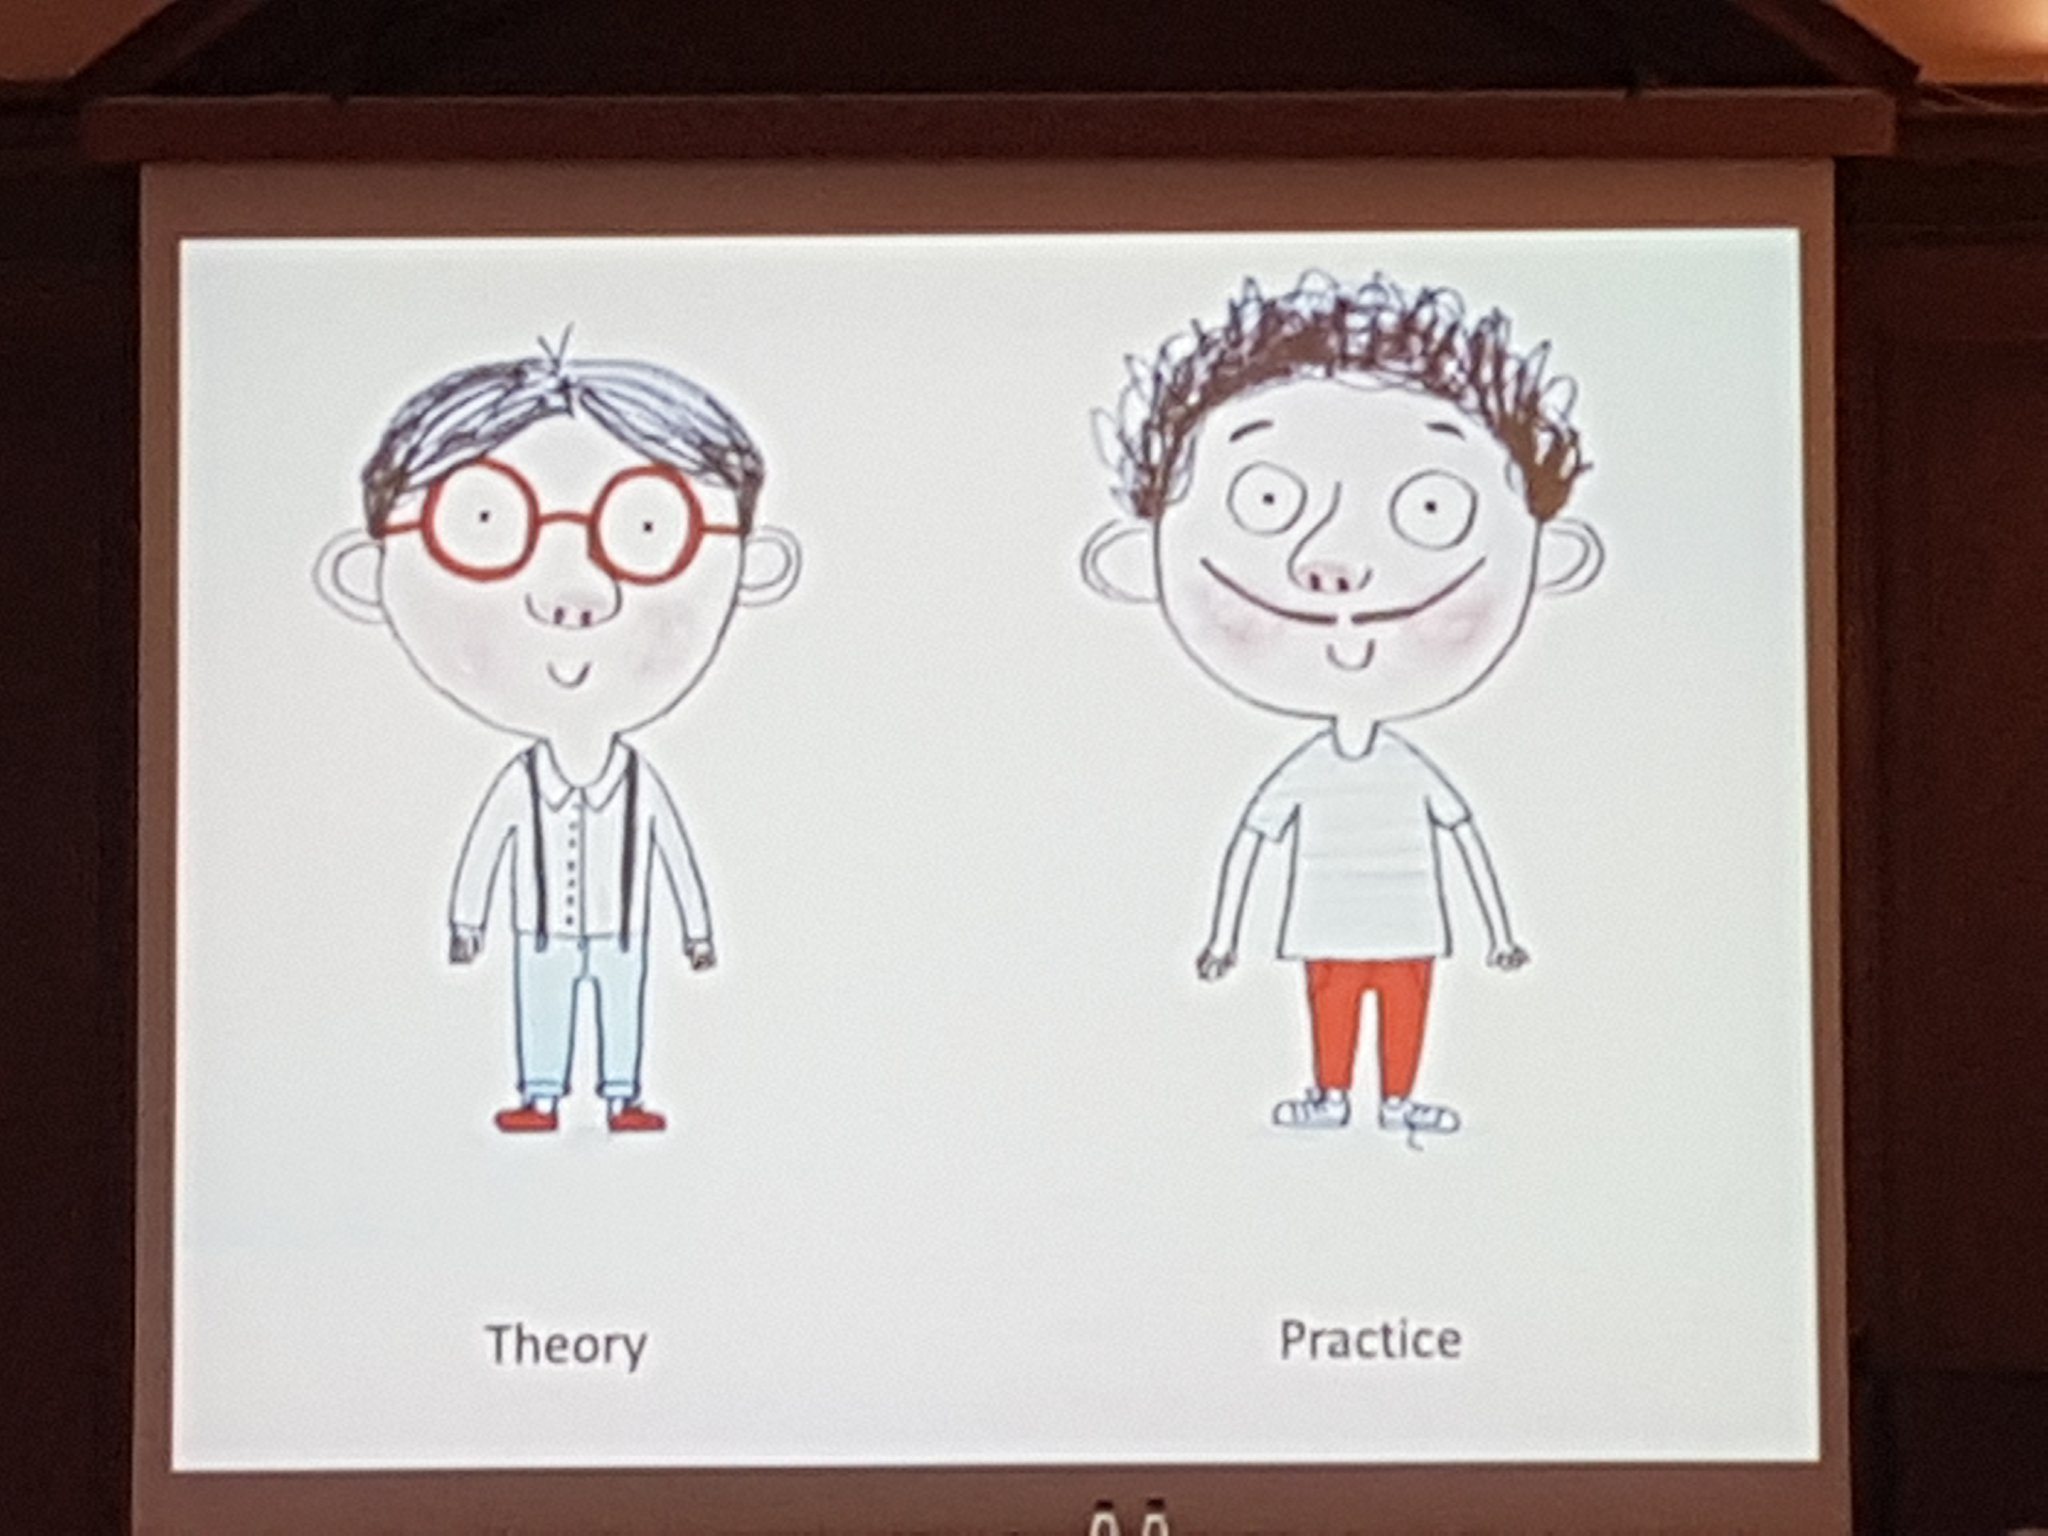 The theory & practice of creating picture books! Look familiar? #IBBYPictures @IBBYUK https://t.co/b6kDZ4O4w5